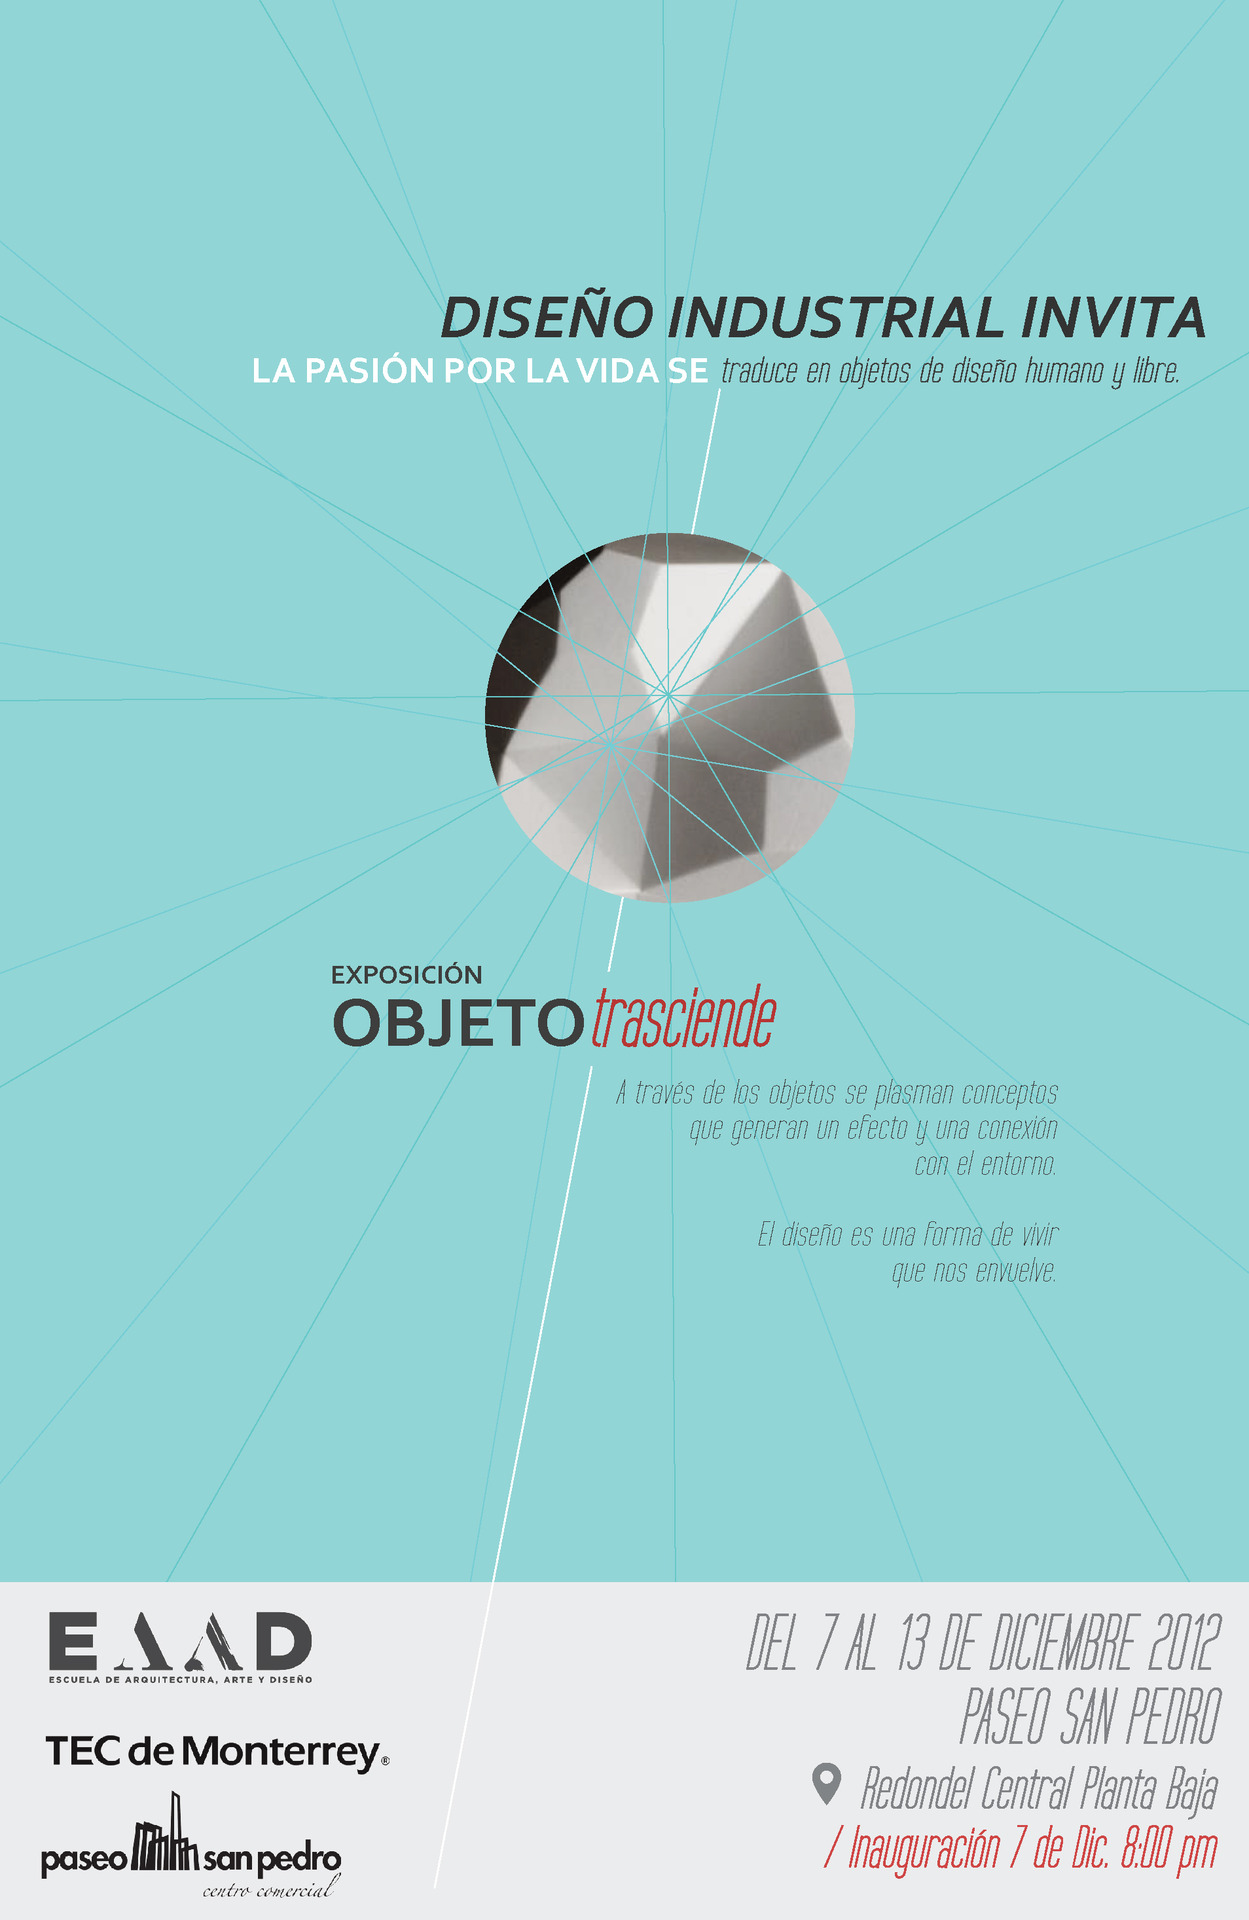 "Objeto Trasciende Exhibition The Tec de Monterrey's Industrial Design department is organizing the ""Objeto Trasciende"" exhibition where they will show work from students and alumni at Paseo San Pedro. Several recent projects from the studio like Ofimodul's Línea01 and Casa Bosques' Primer Objeto will be featured on the show that will take place from December 7th to the 13th. Please join us at the inauguration this Friday 7th of December at 8pm."